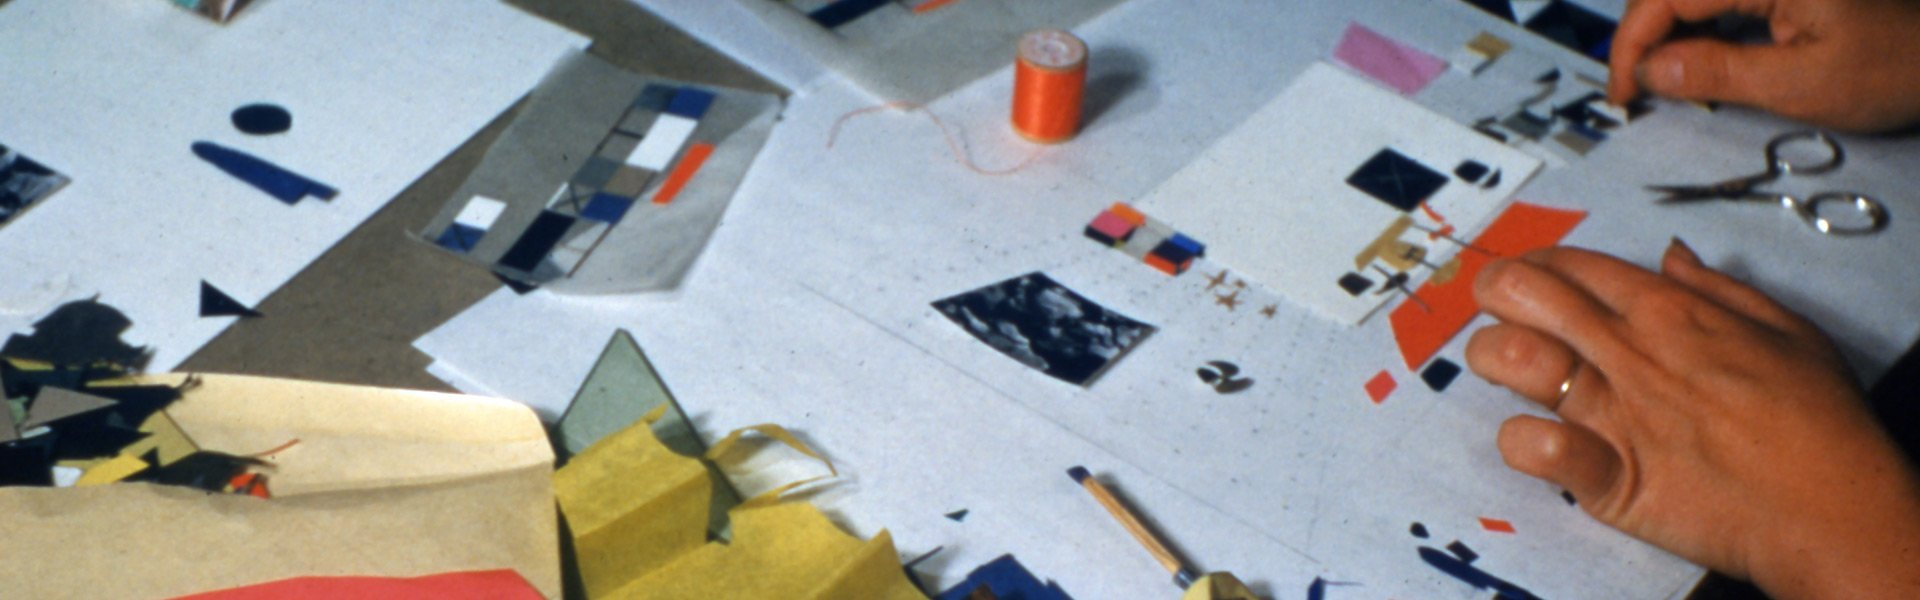 A close up of Ray Eames's hands as she works through a new design on paper